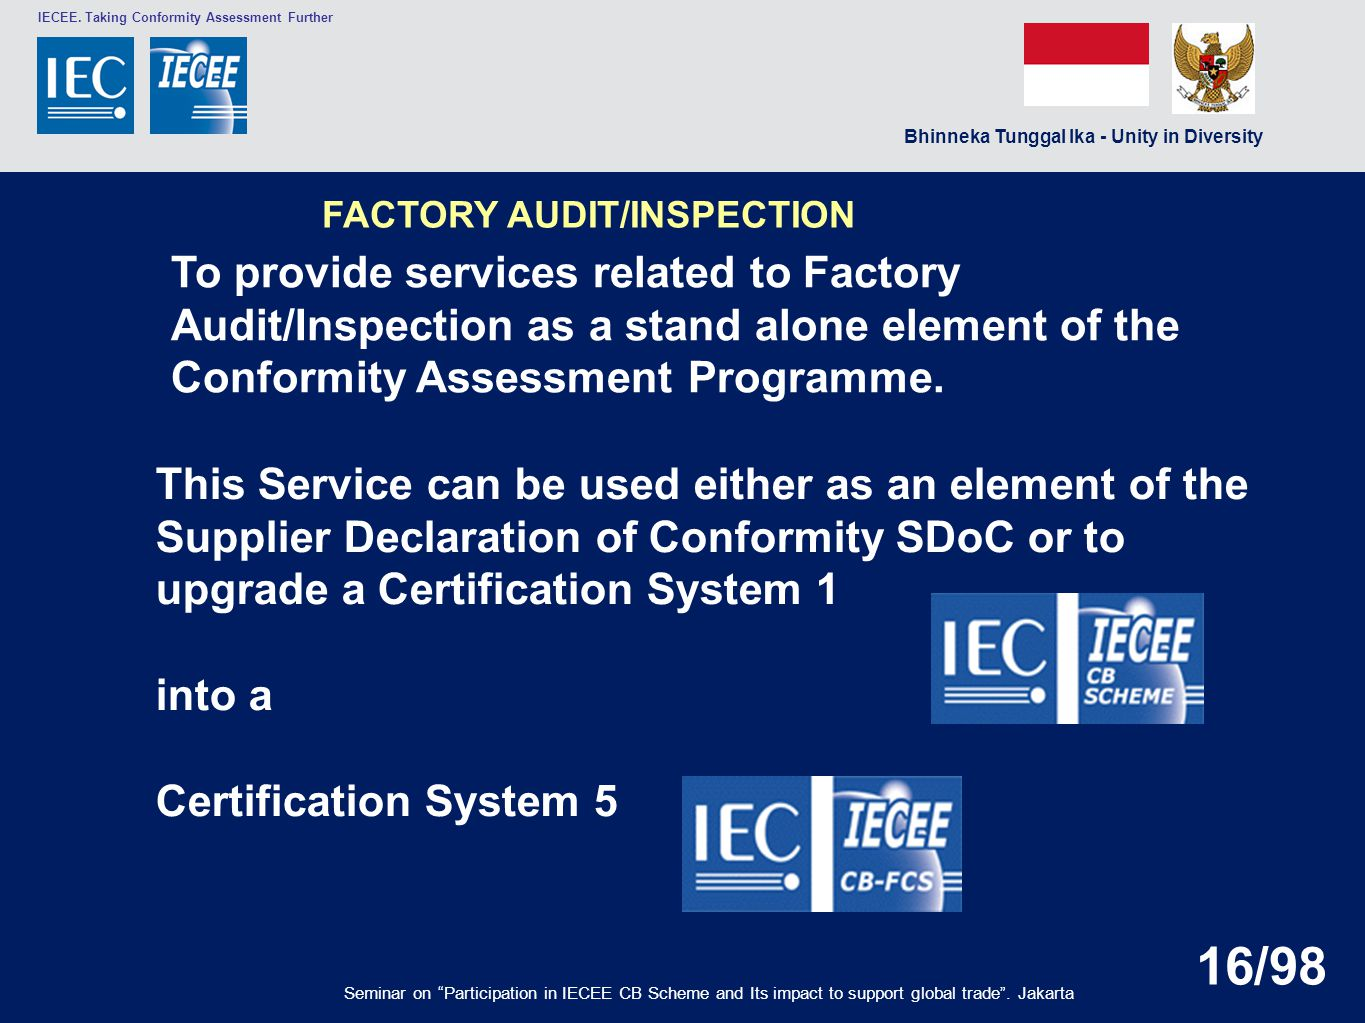 upgrade a Certification System 1 into a Certification System 5